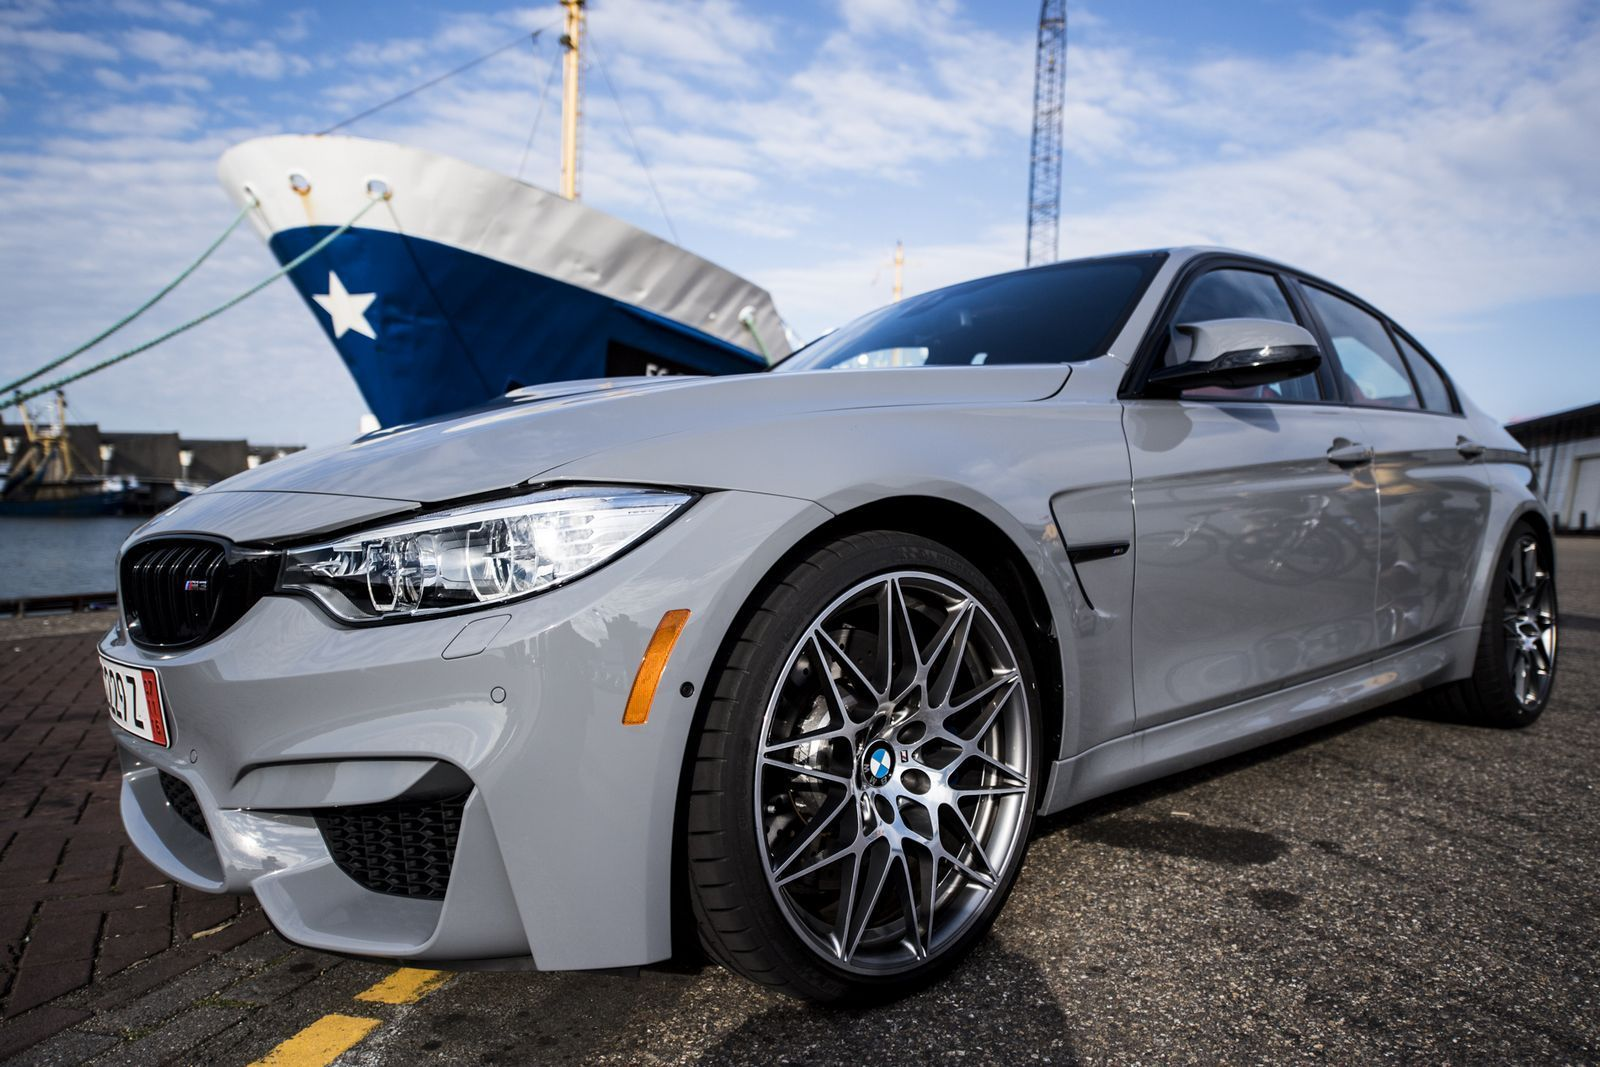 Check Out This Awesome Bmw M3 Competition Package Painted Nardo Grey Bmw M3 Bmw Nardo Grey